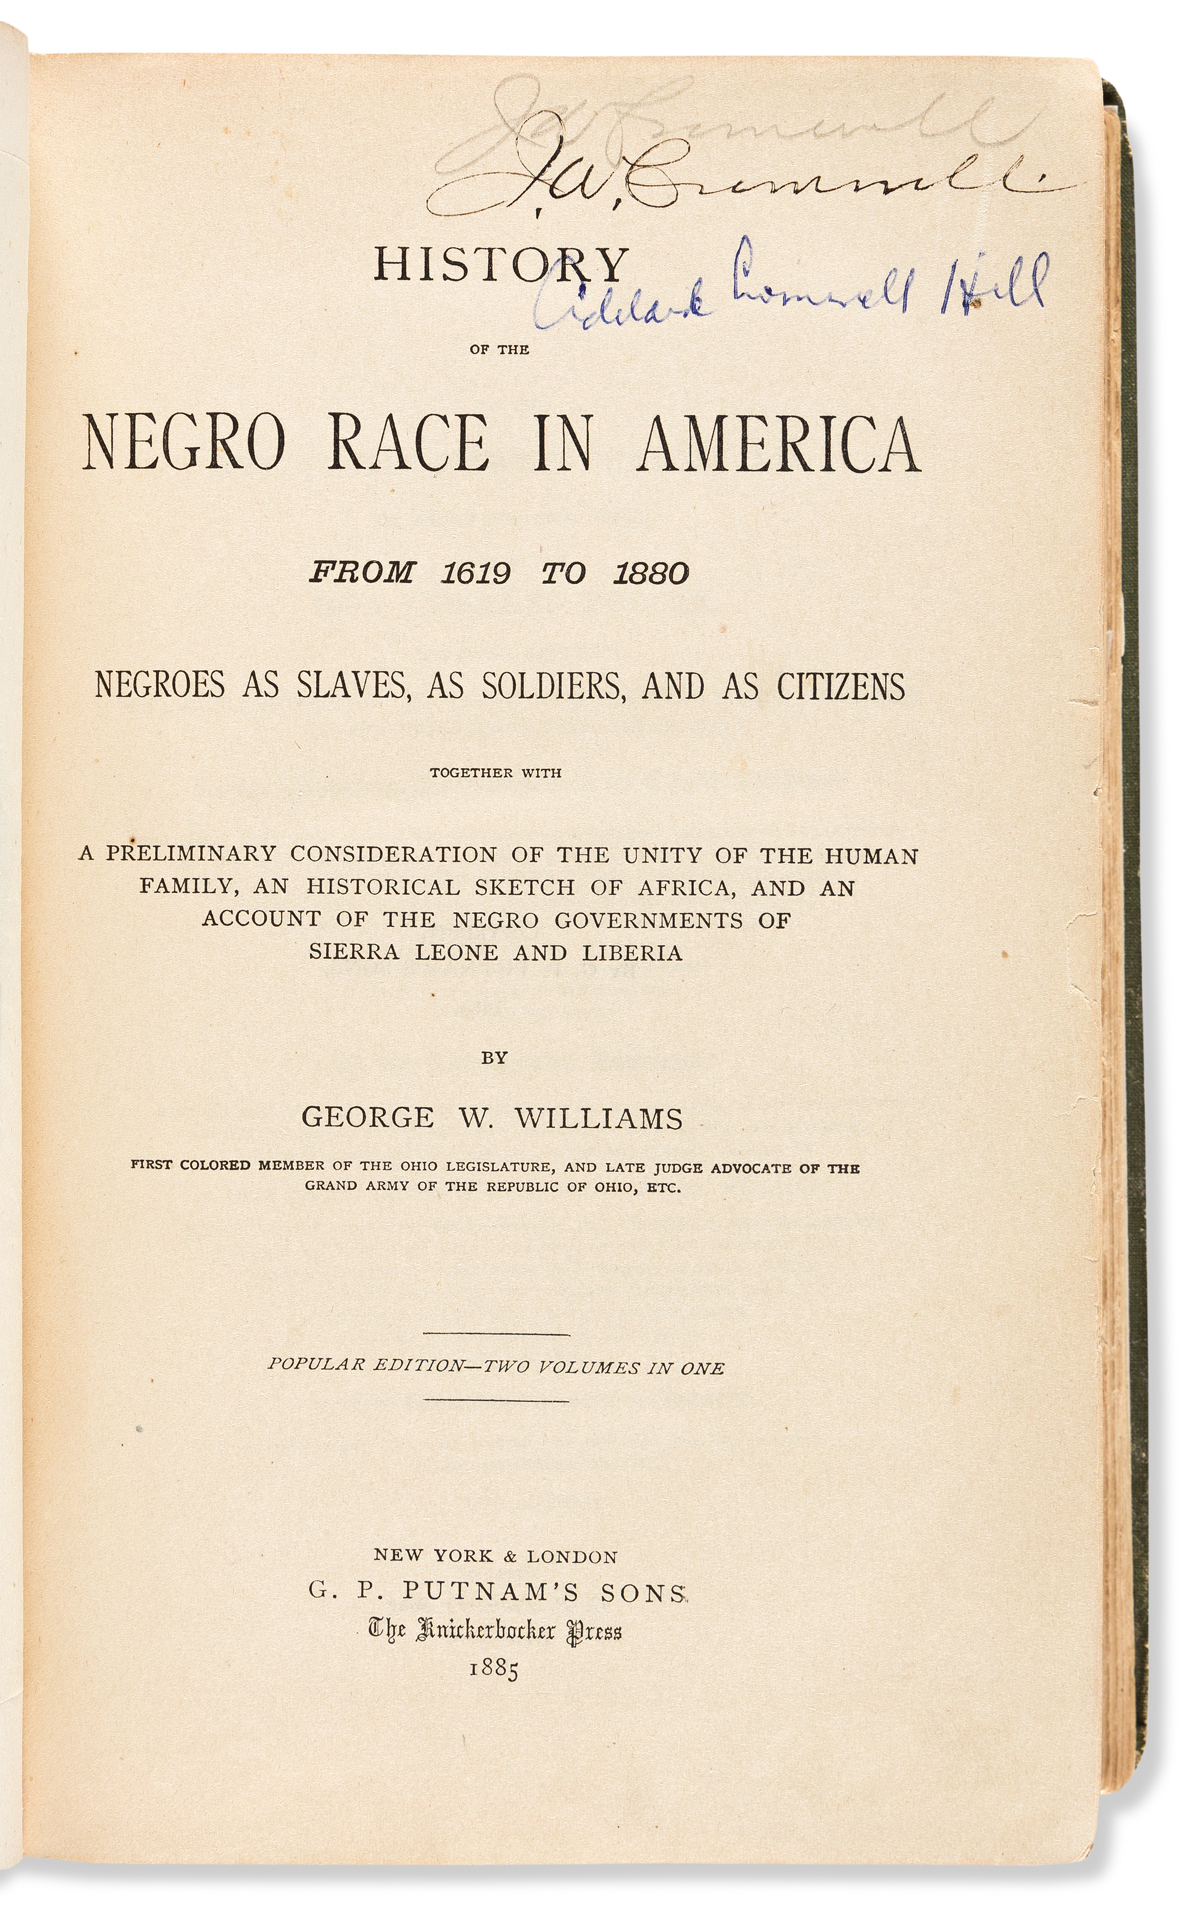 (CROMWELL LIBRARY.) George Washington Williams. History of the Negro Race in America.